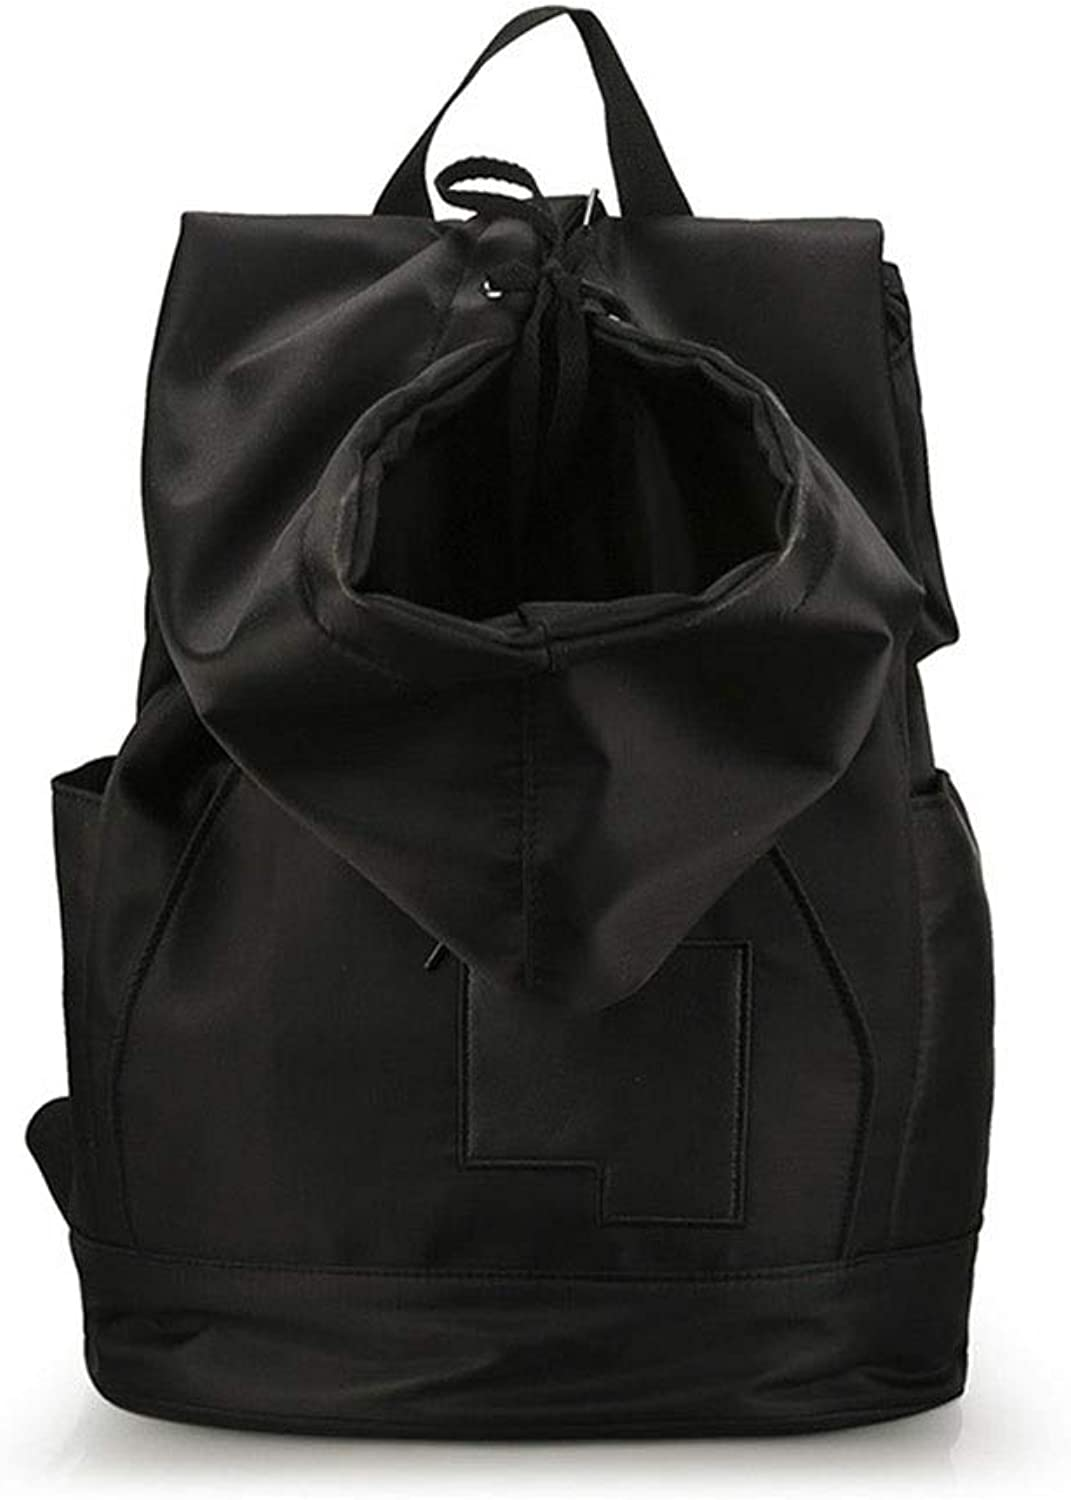 KUVV Durable Nylon Cloth Personality Clothes Hat Shoulder Bag Outdoor Leisure Travel Backpack Men and Women Fashion Trend Solid color Sports Bag (color   Black)